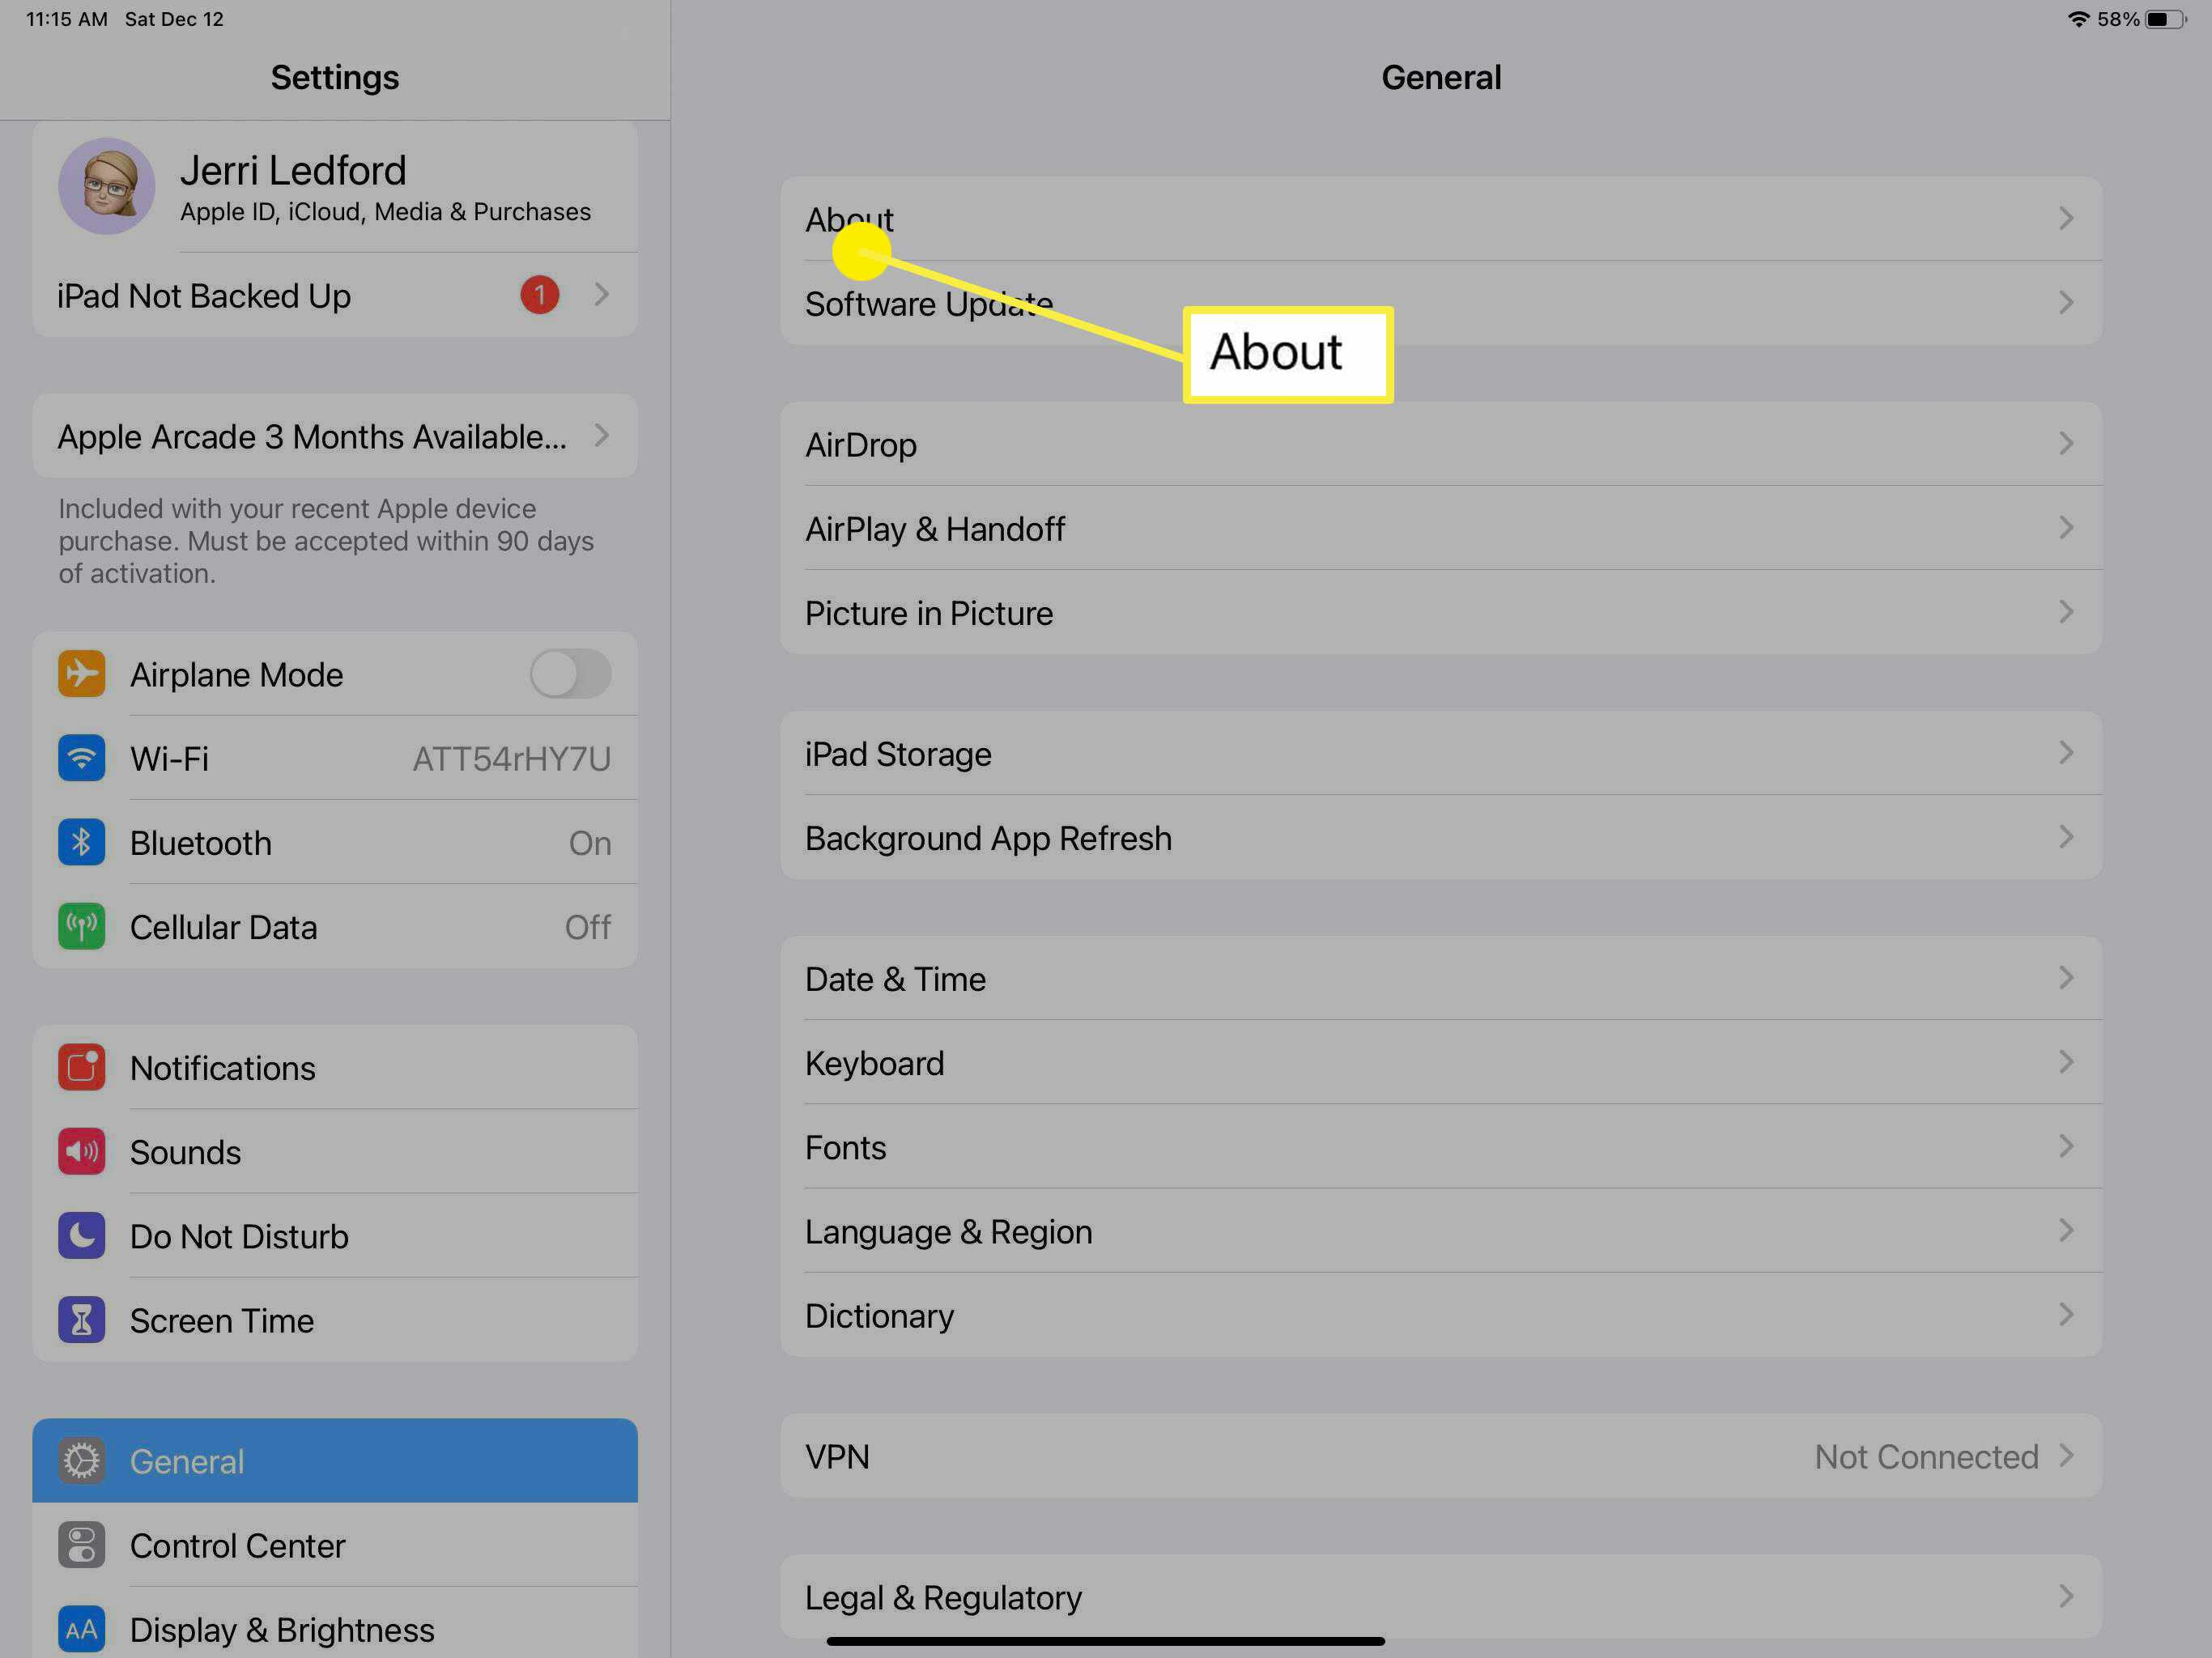 The About option in the iPad's General Settings.